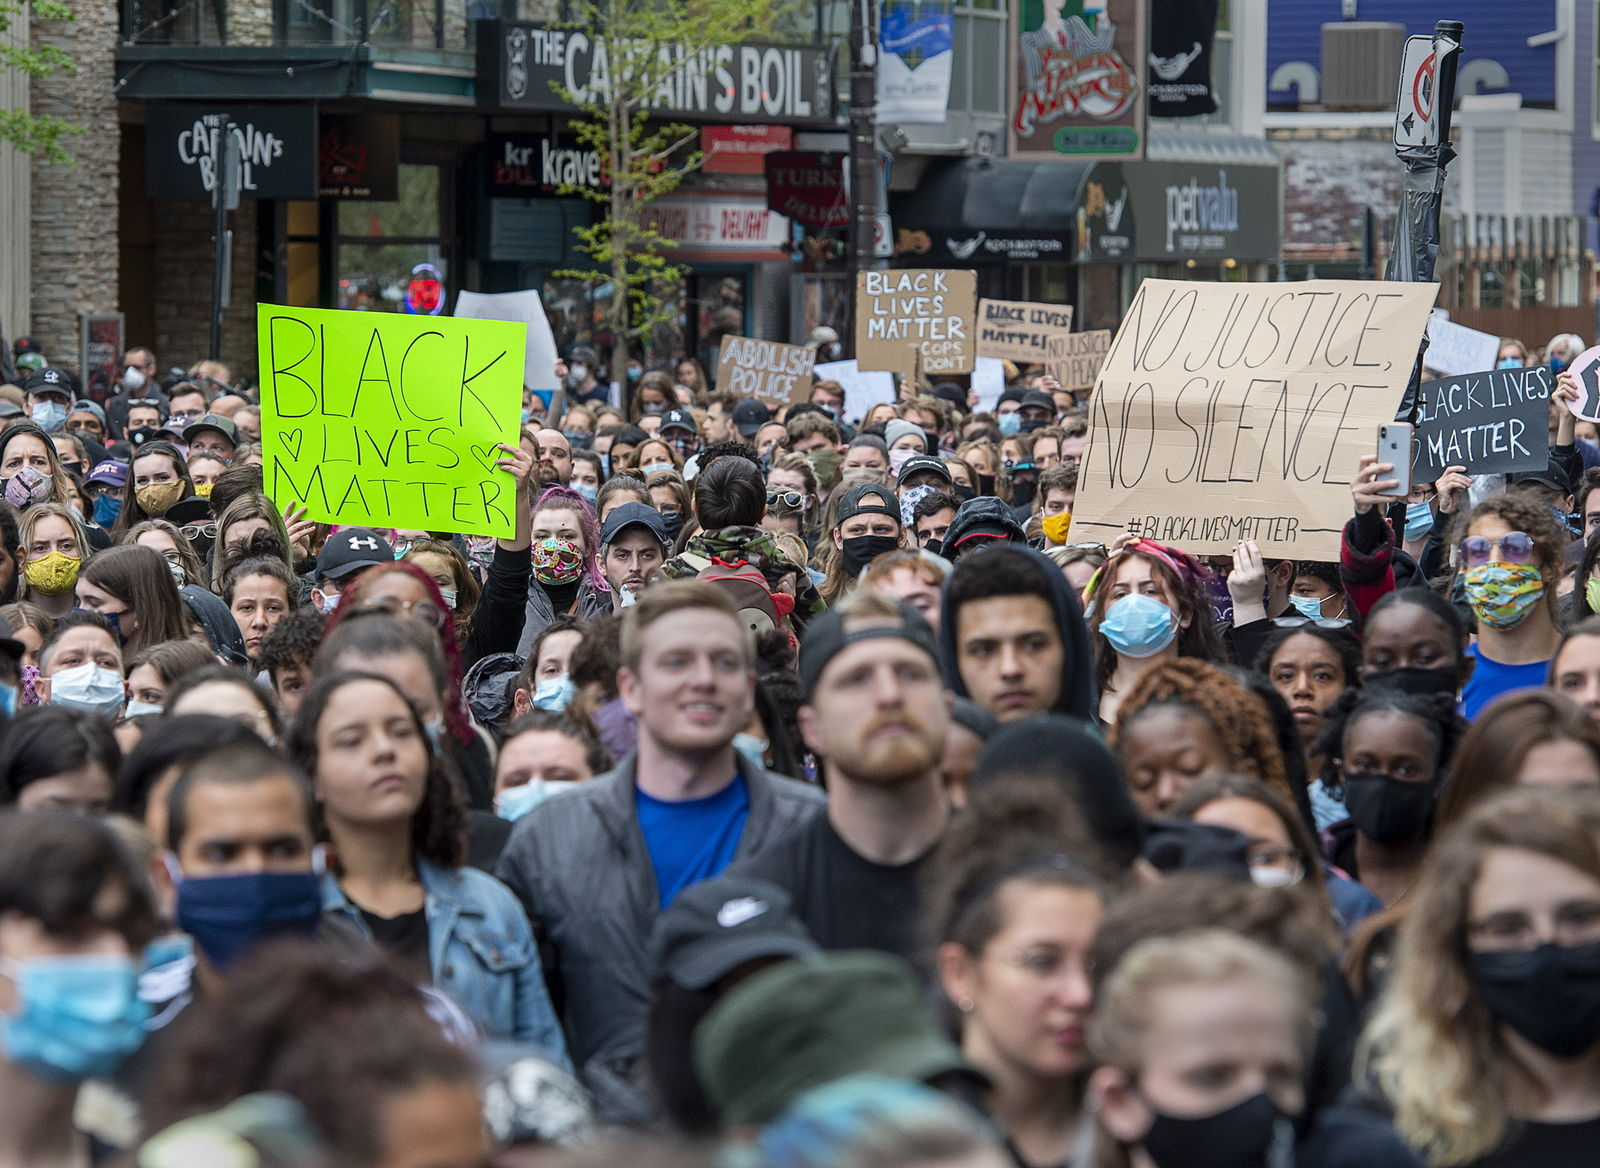 Protesters take to the streets to demonstrate against police action in the death of George Floyd and others in Halifax, Nova Scotia, on Monday, June 1, 2020. (Andrew Vaughan/The Canadian Press via AP)